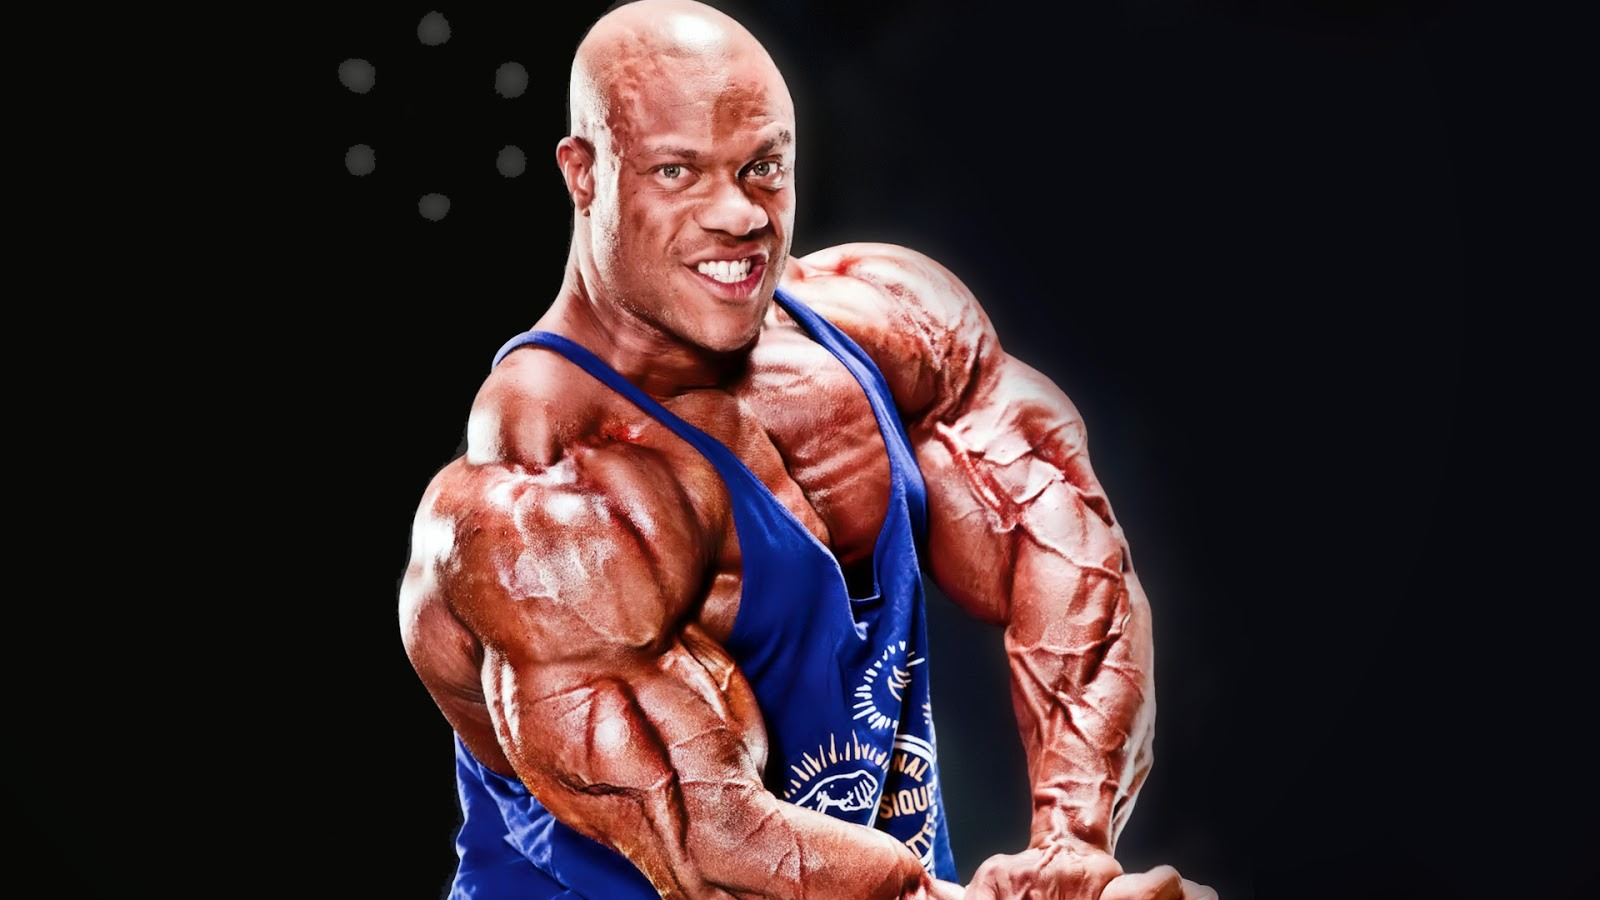 Mr olympia phil heath wallpaper 12 1600x900